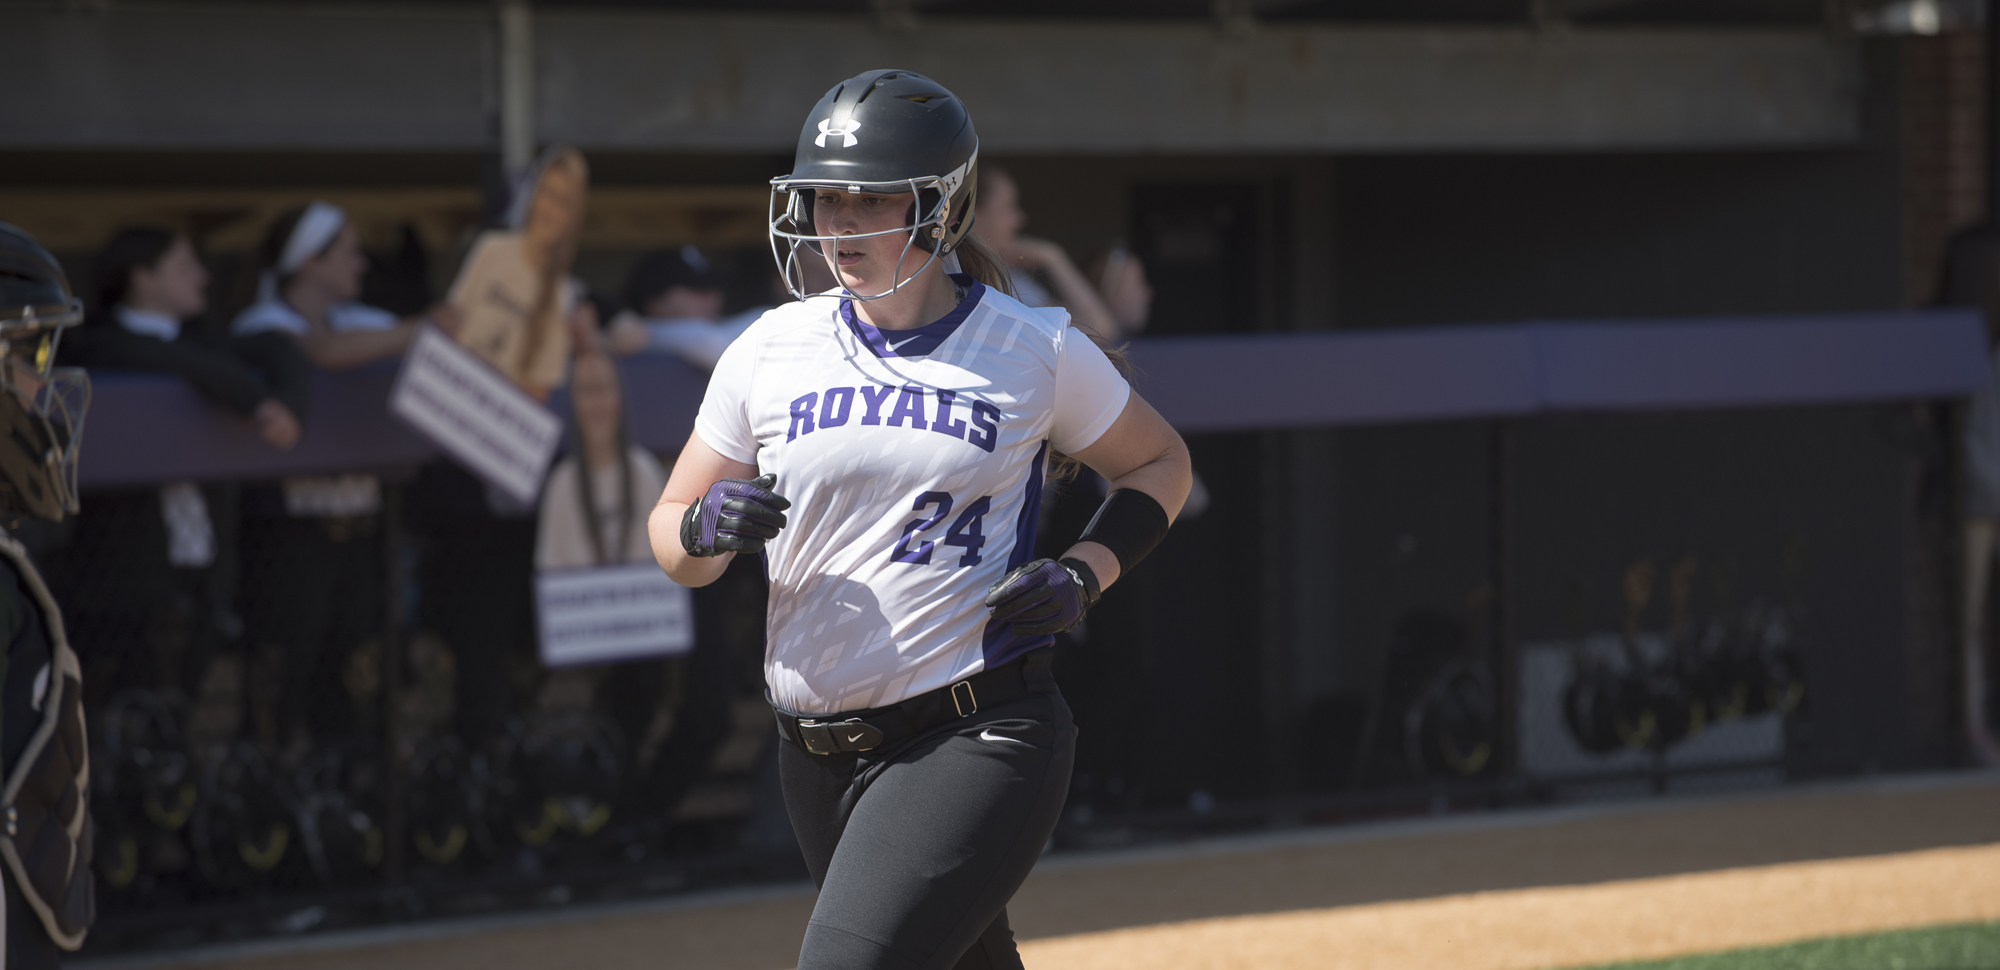 Sophomore Jennifer Sweeney was named to the NFCA Division III National Player of the Year watch list on Monday.